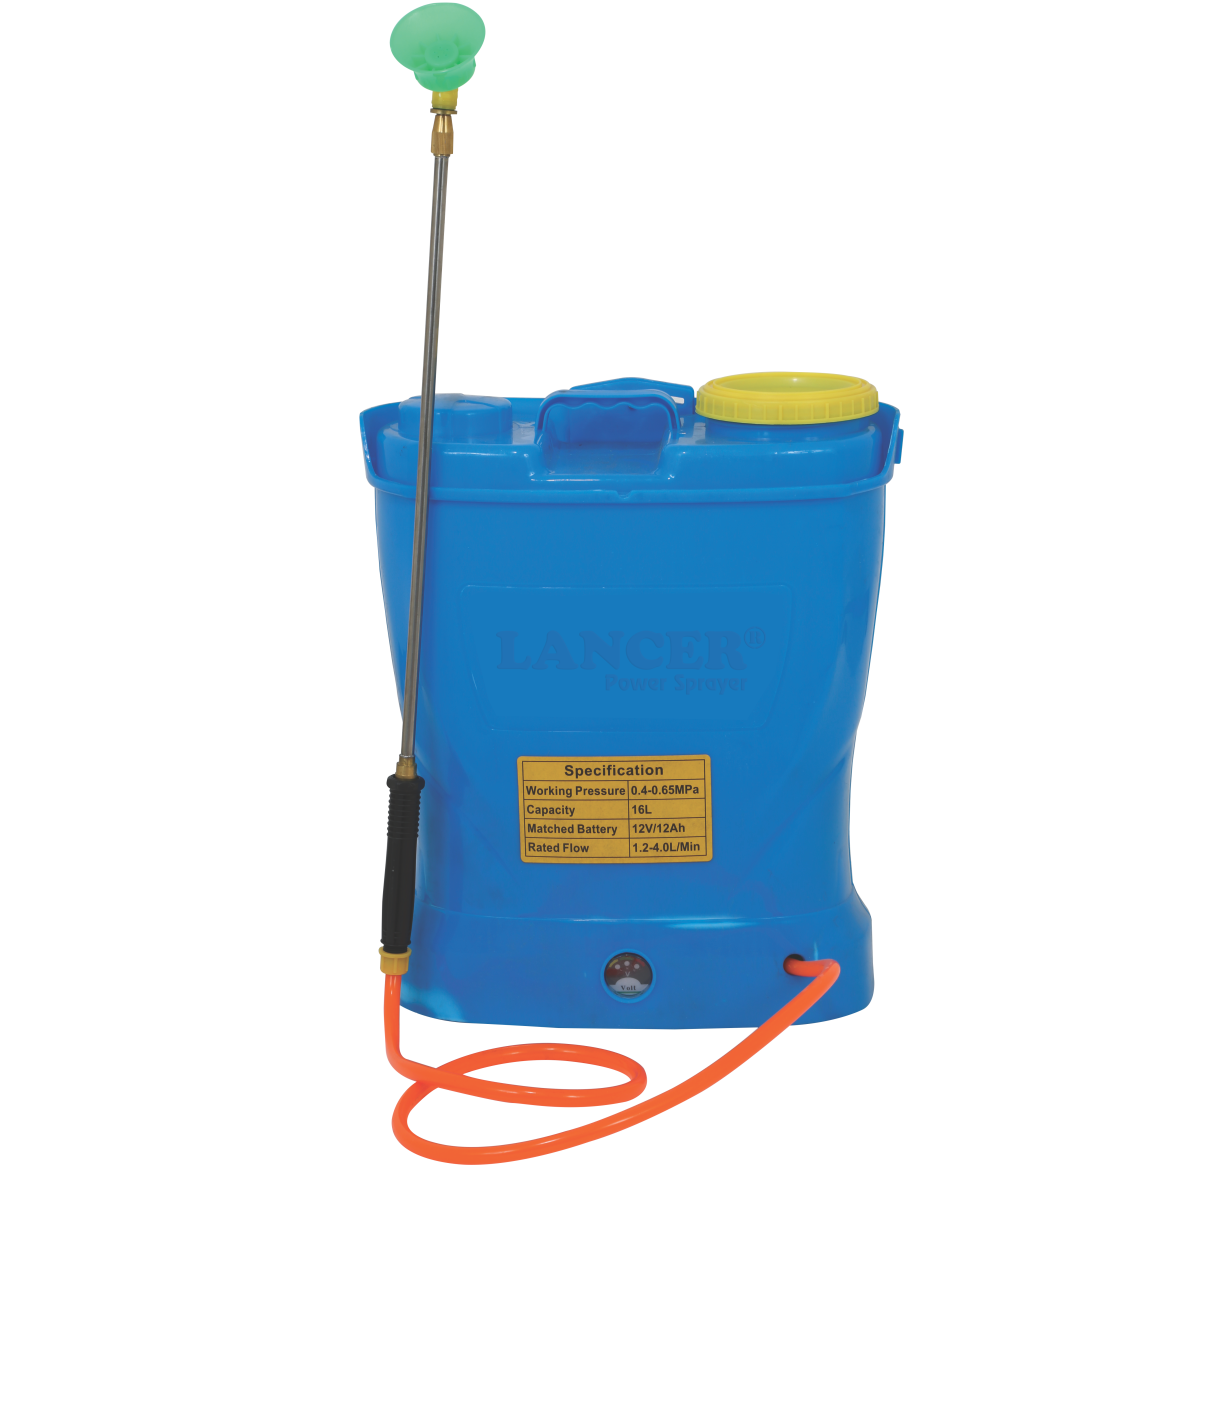 Knapsack Battery Sprayer Lancer LX-KB16-1